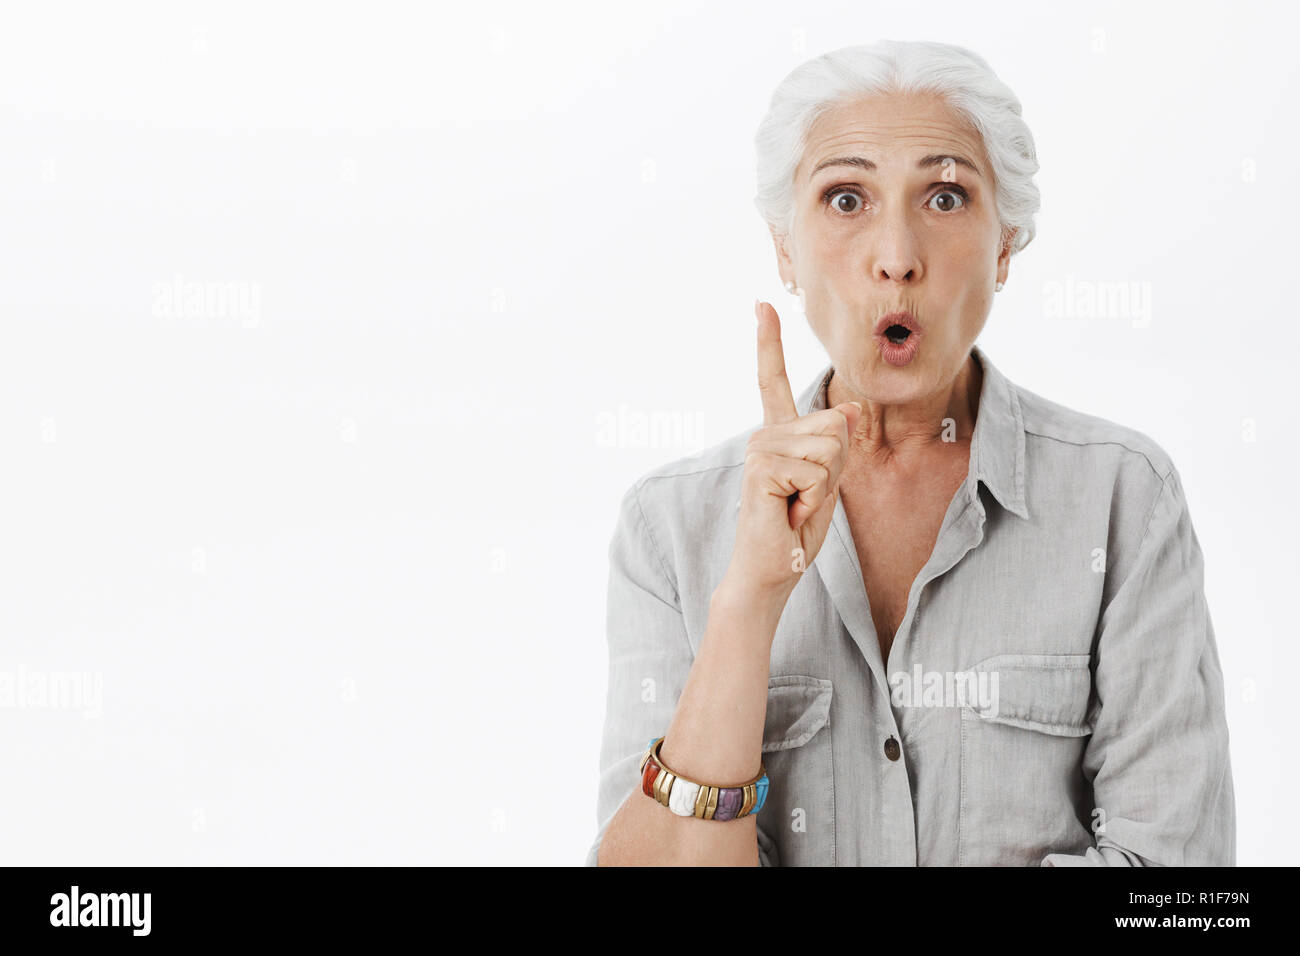 I got excellent advice for daughter. Portrait of excited and enthusiastic creative senior woman with white hair folding lips raising index finger in eureka gesture while having idea adding suggestion - Stock Image